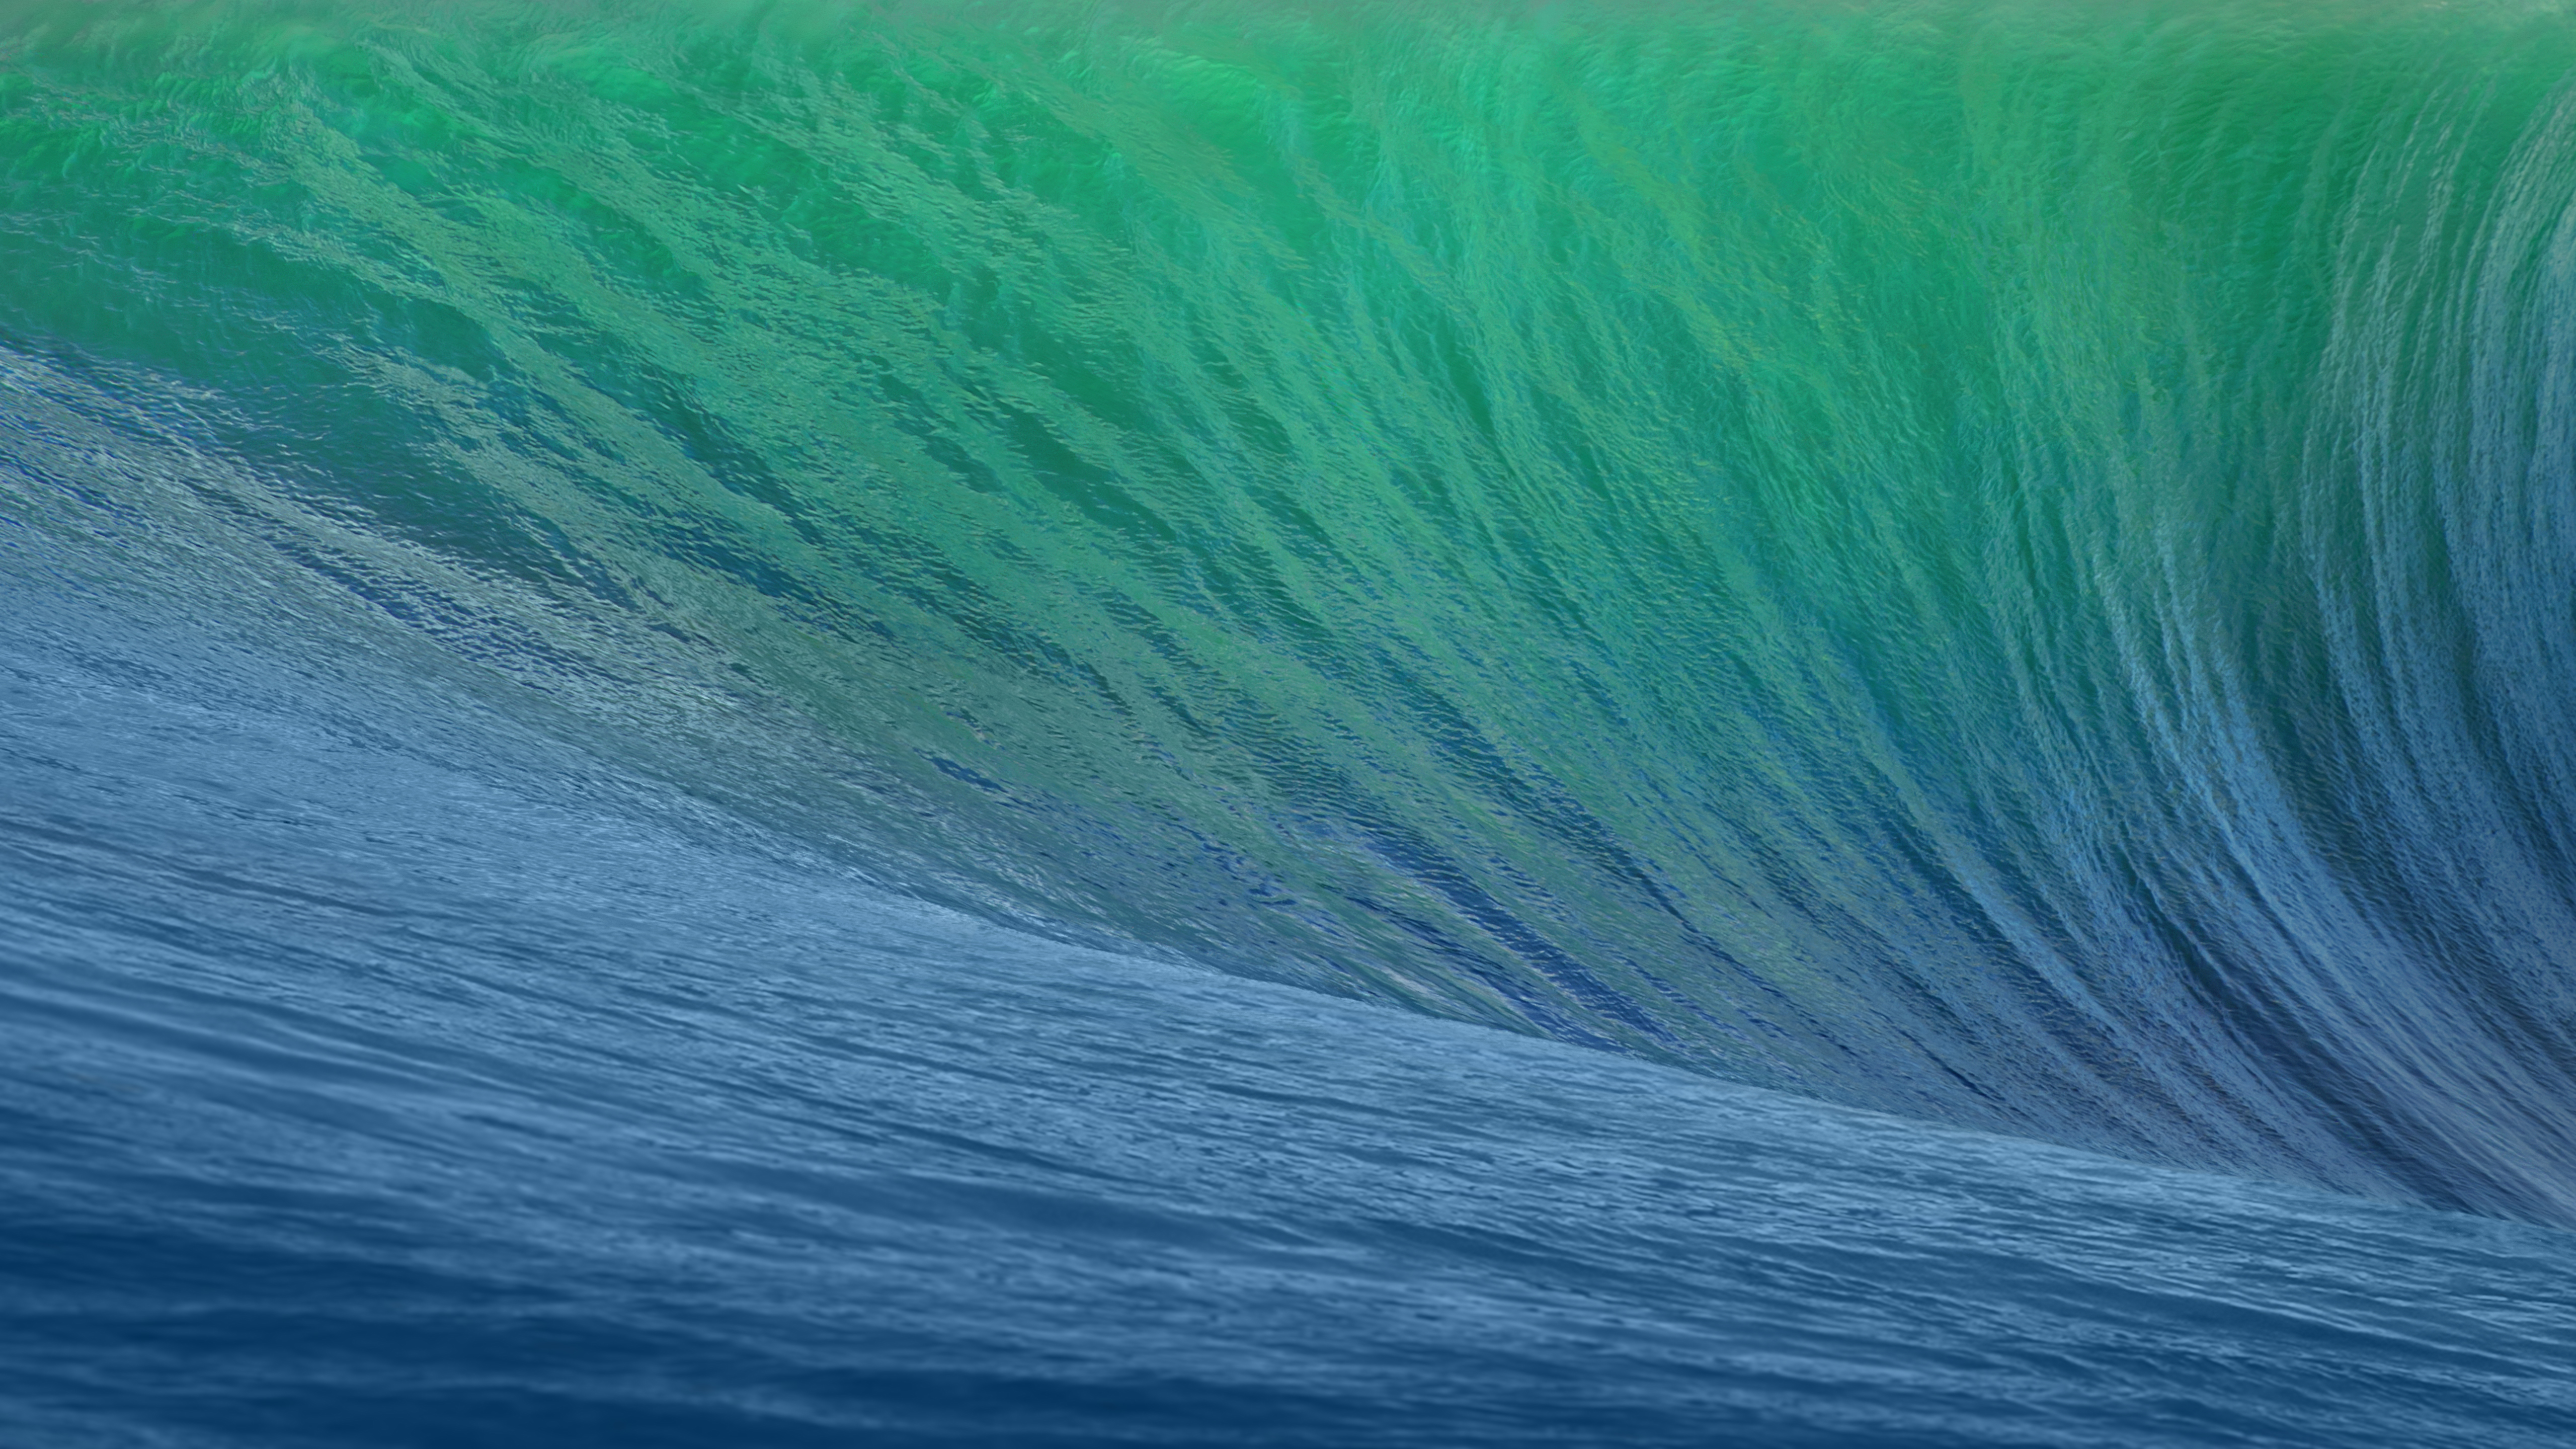 Download OS X Yosemite and iOS Wallpapers How to